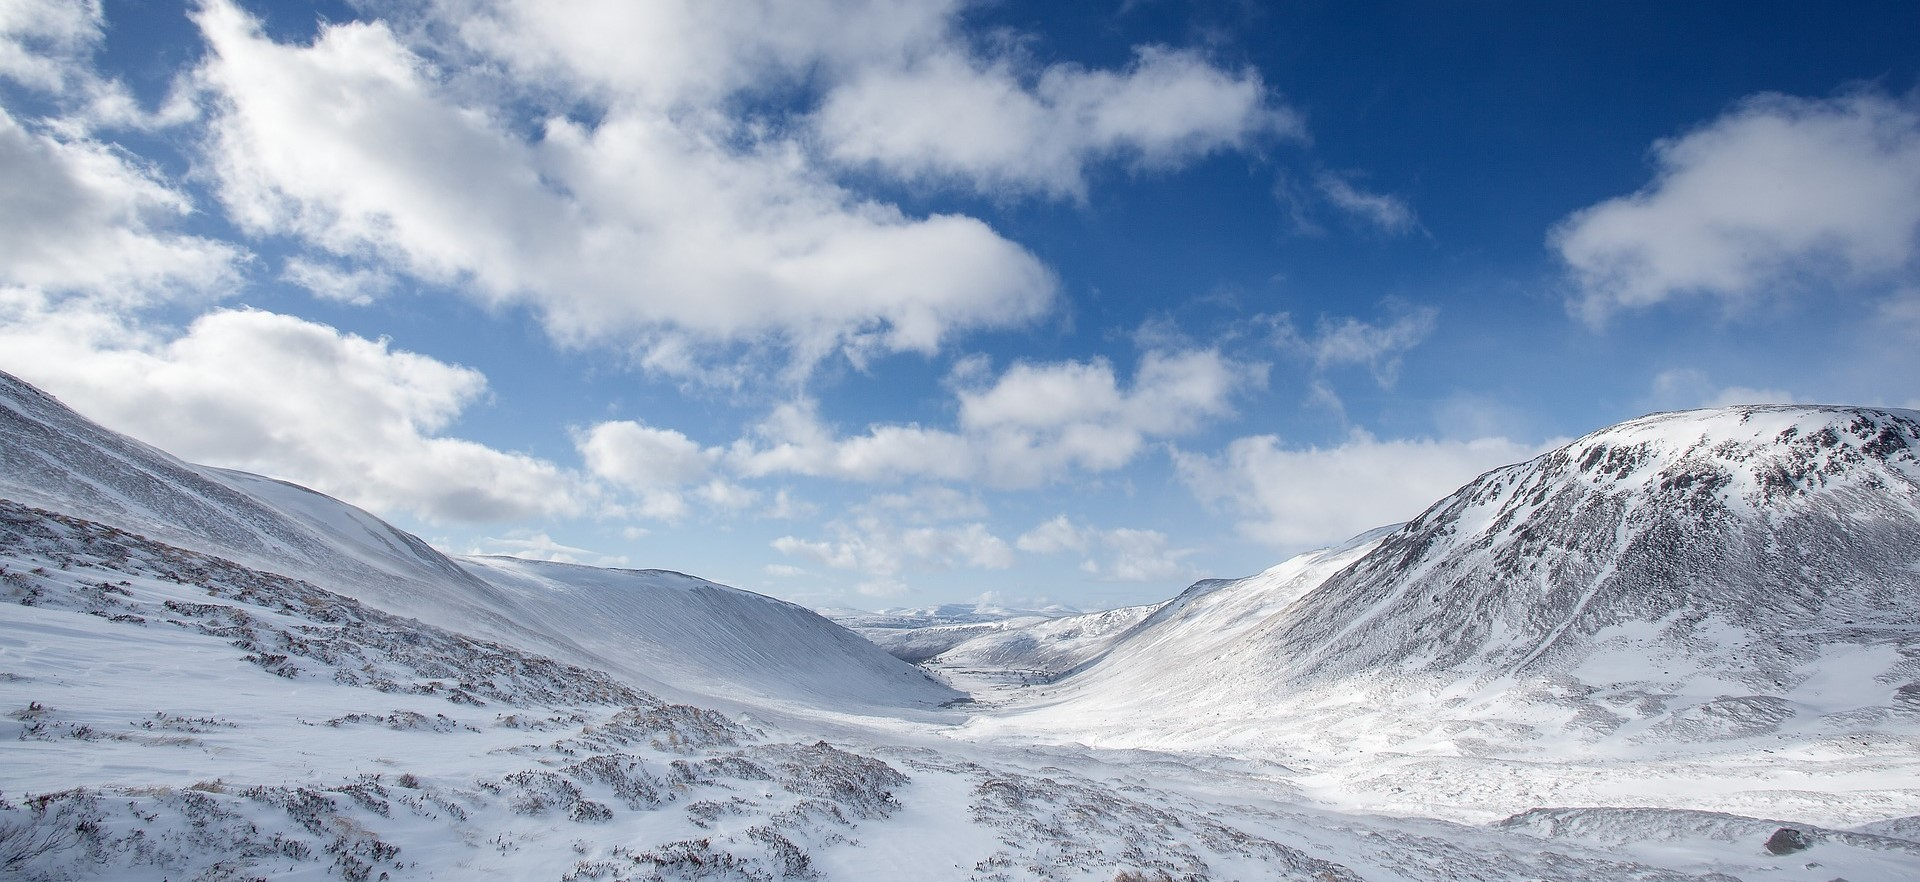 Skiing In Scotland: Cairngorm National Park